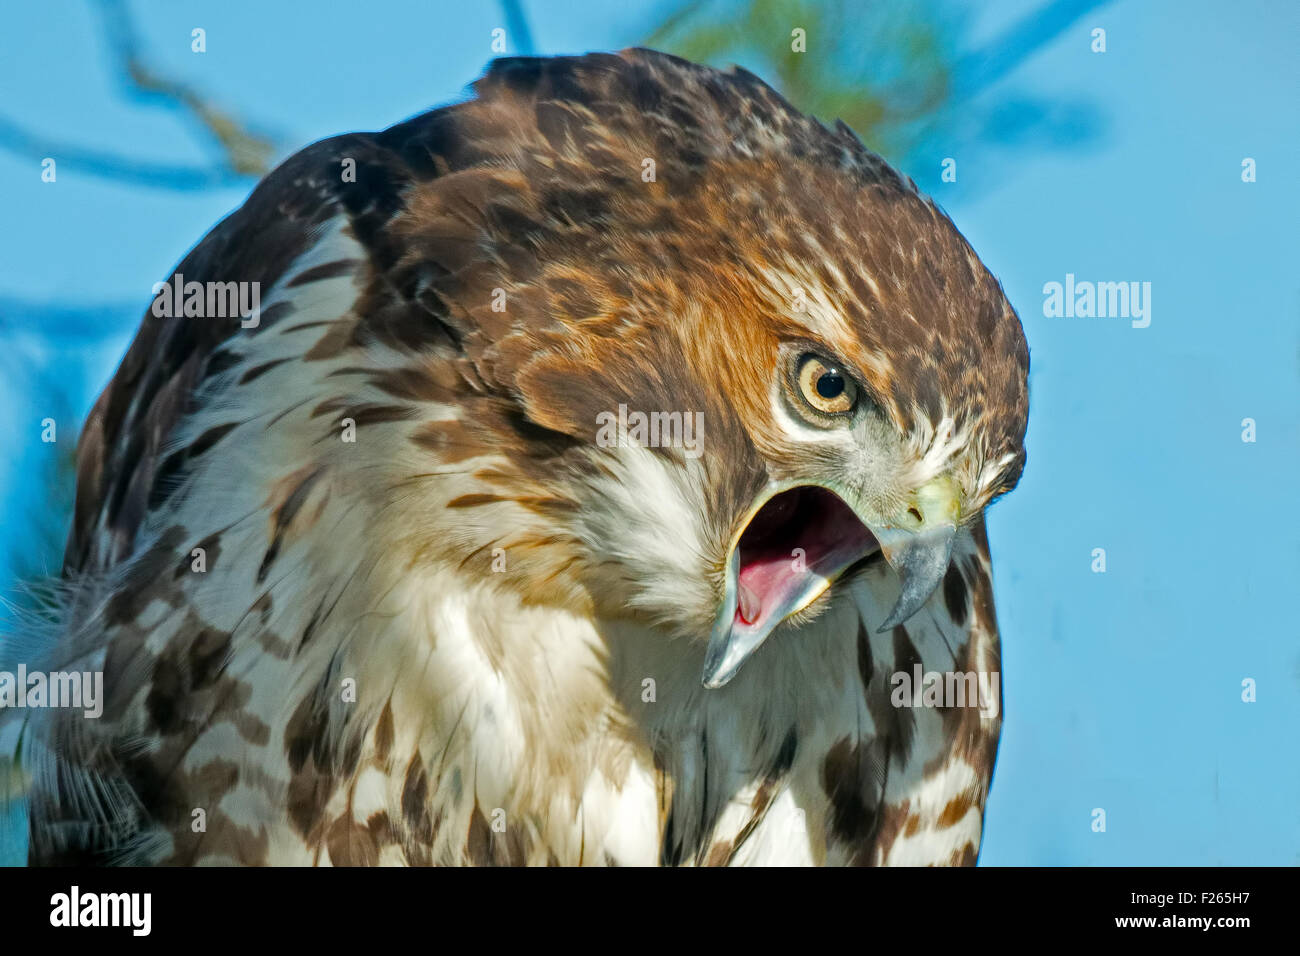 An Angry Red-tailed Hawk - Stock Image